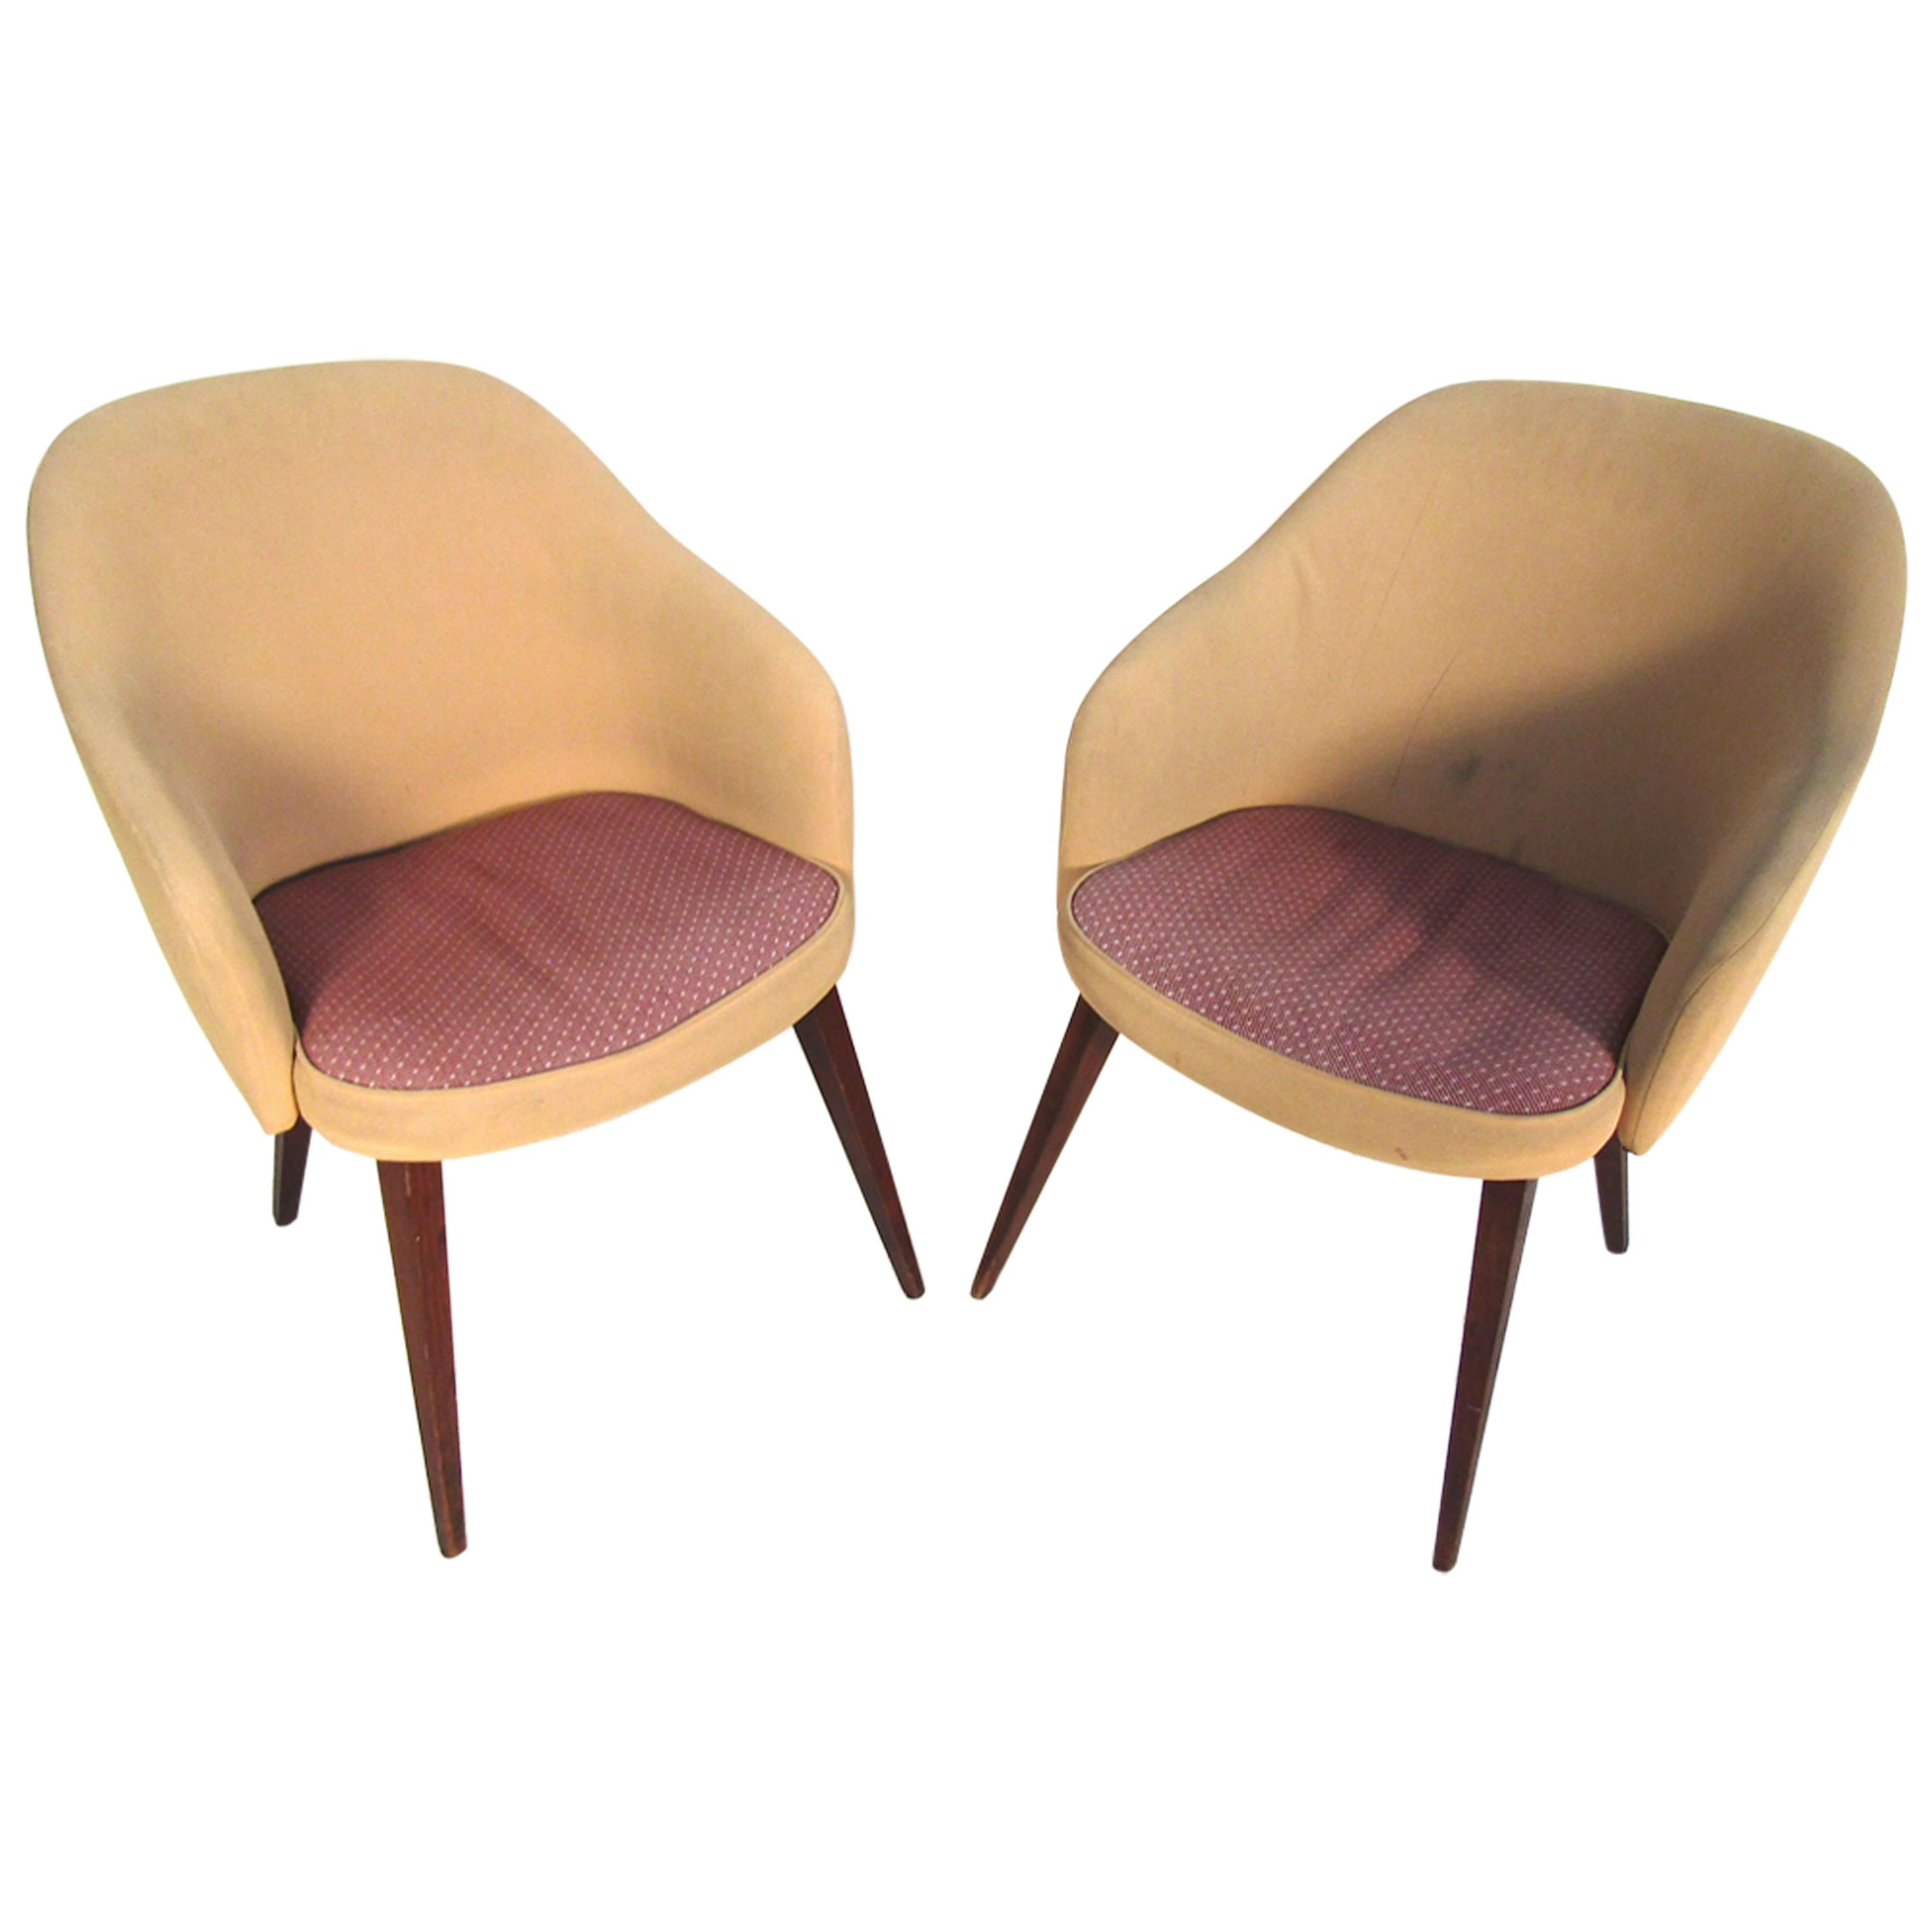 Pair of Mid-Century Modern Lawsonia Armchairs